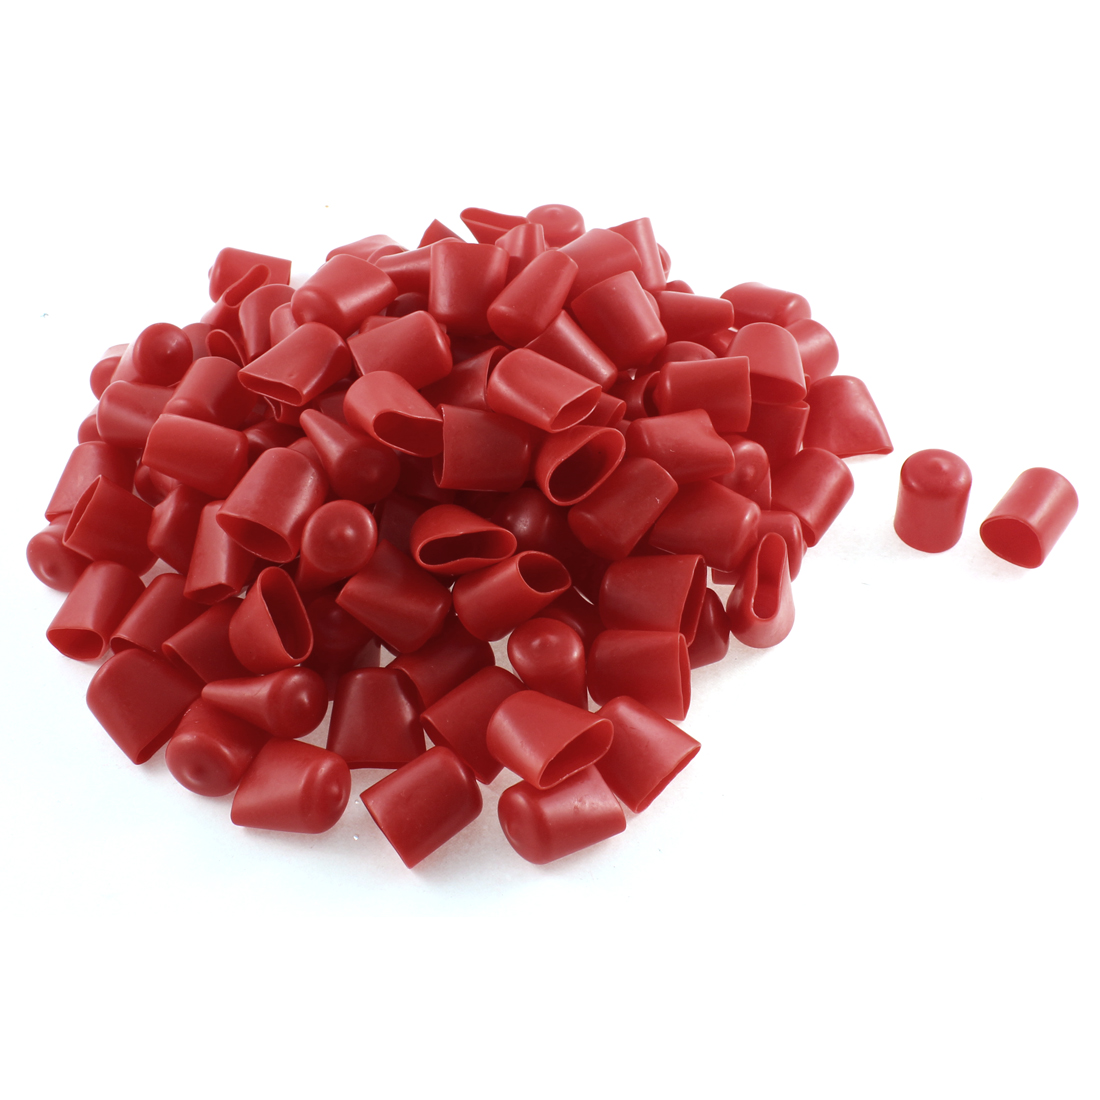 150Pcs Red Soft Plastic PVC Insulated End Sleeves Caps Cover 20mm Dia